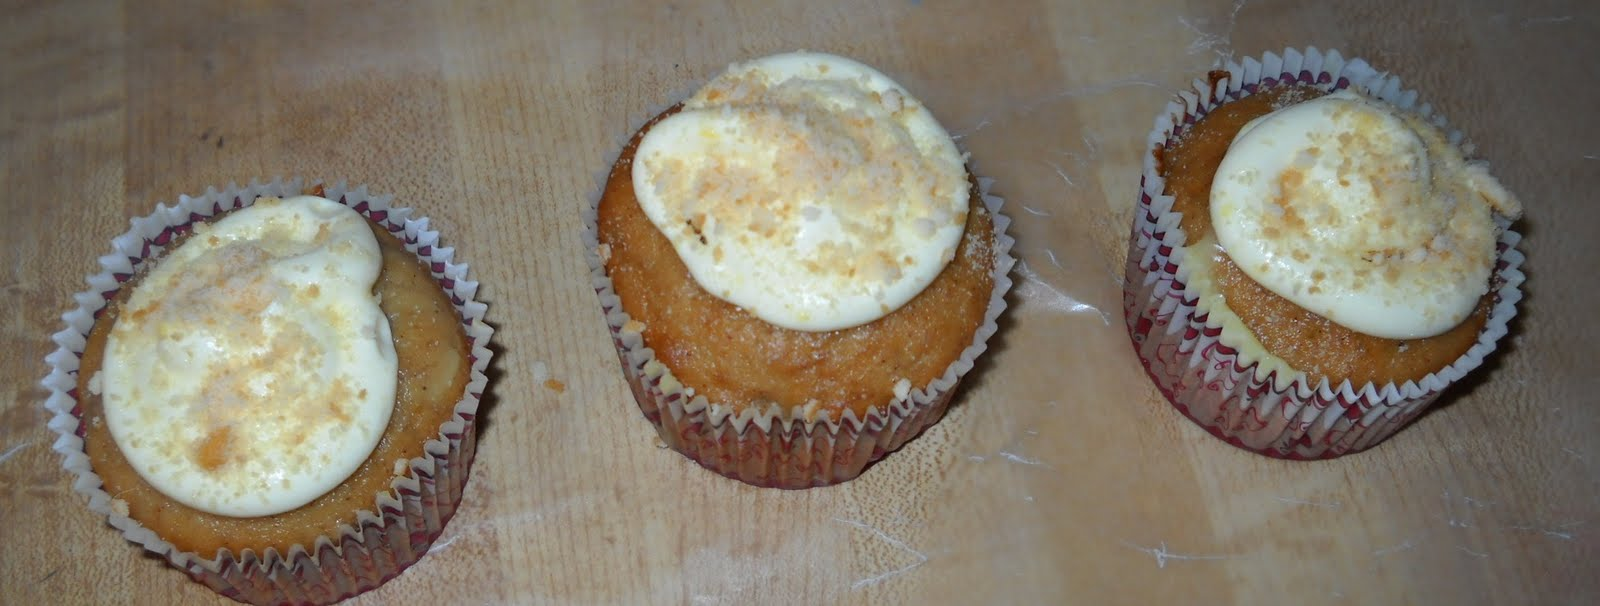 Banana Cream Pie Cupcakes without Banana Garnish.